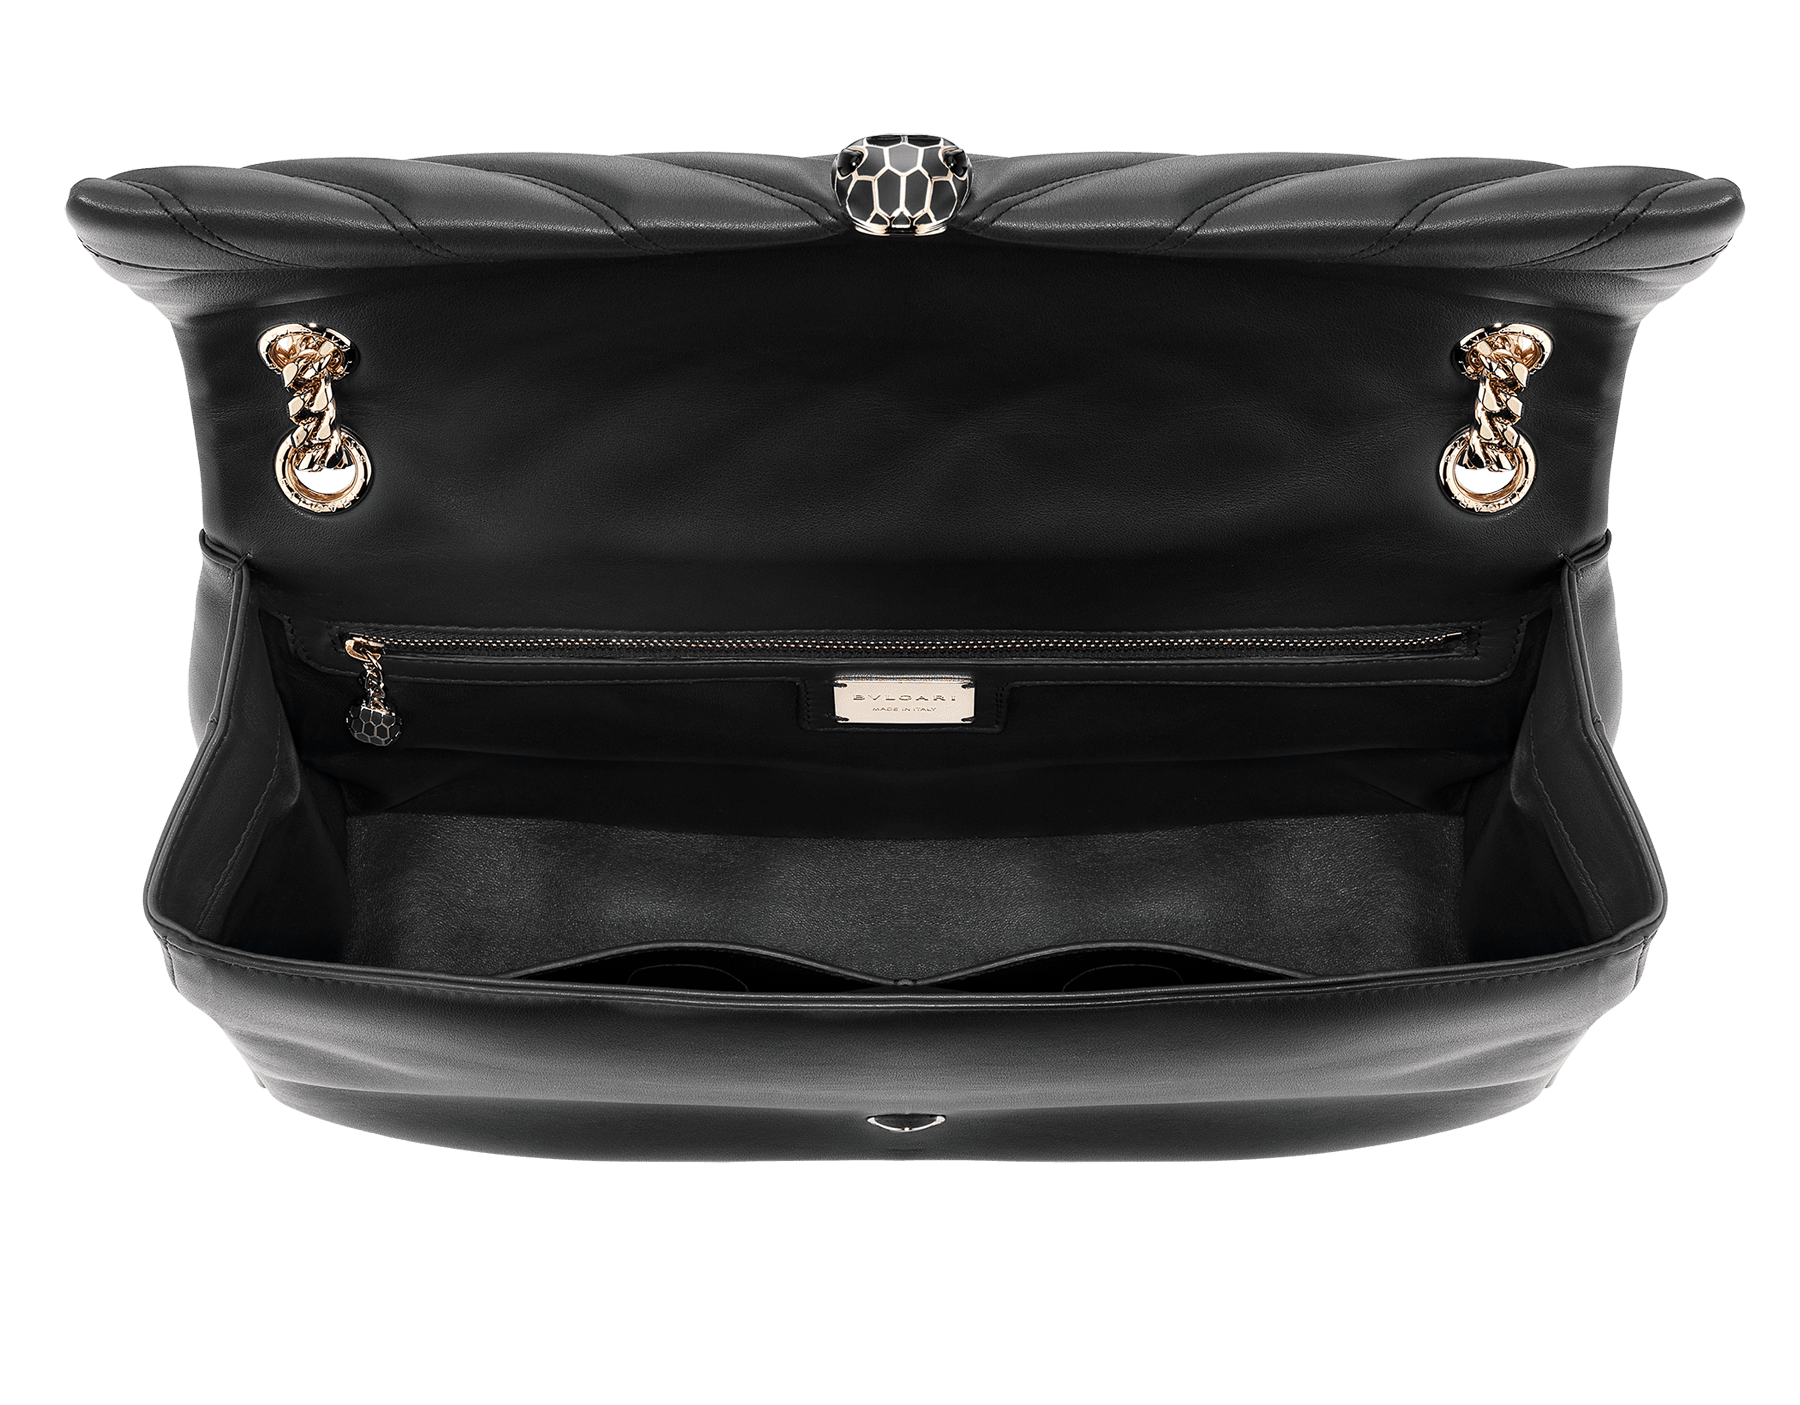 Serpenti Cabochon shoulder bag in soft matelassé black nappa leather with graphic motif and black calf leather. Snakehead closure in rose gold plated brass decorated with matte black and shiny black enamel, and black onyx eyes. 982-NSM image 3